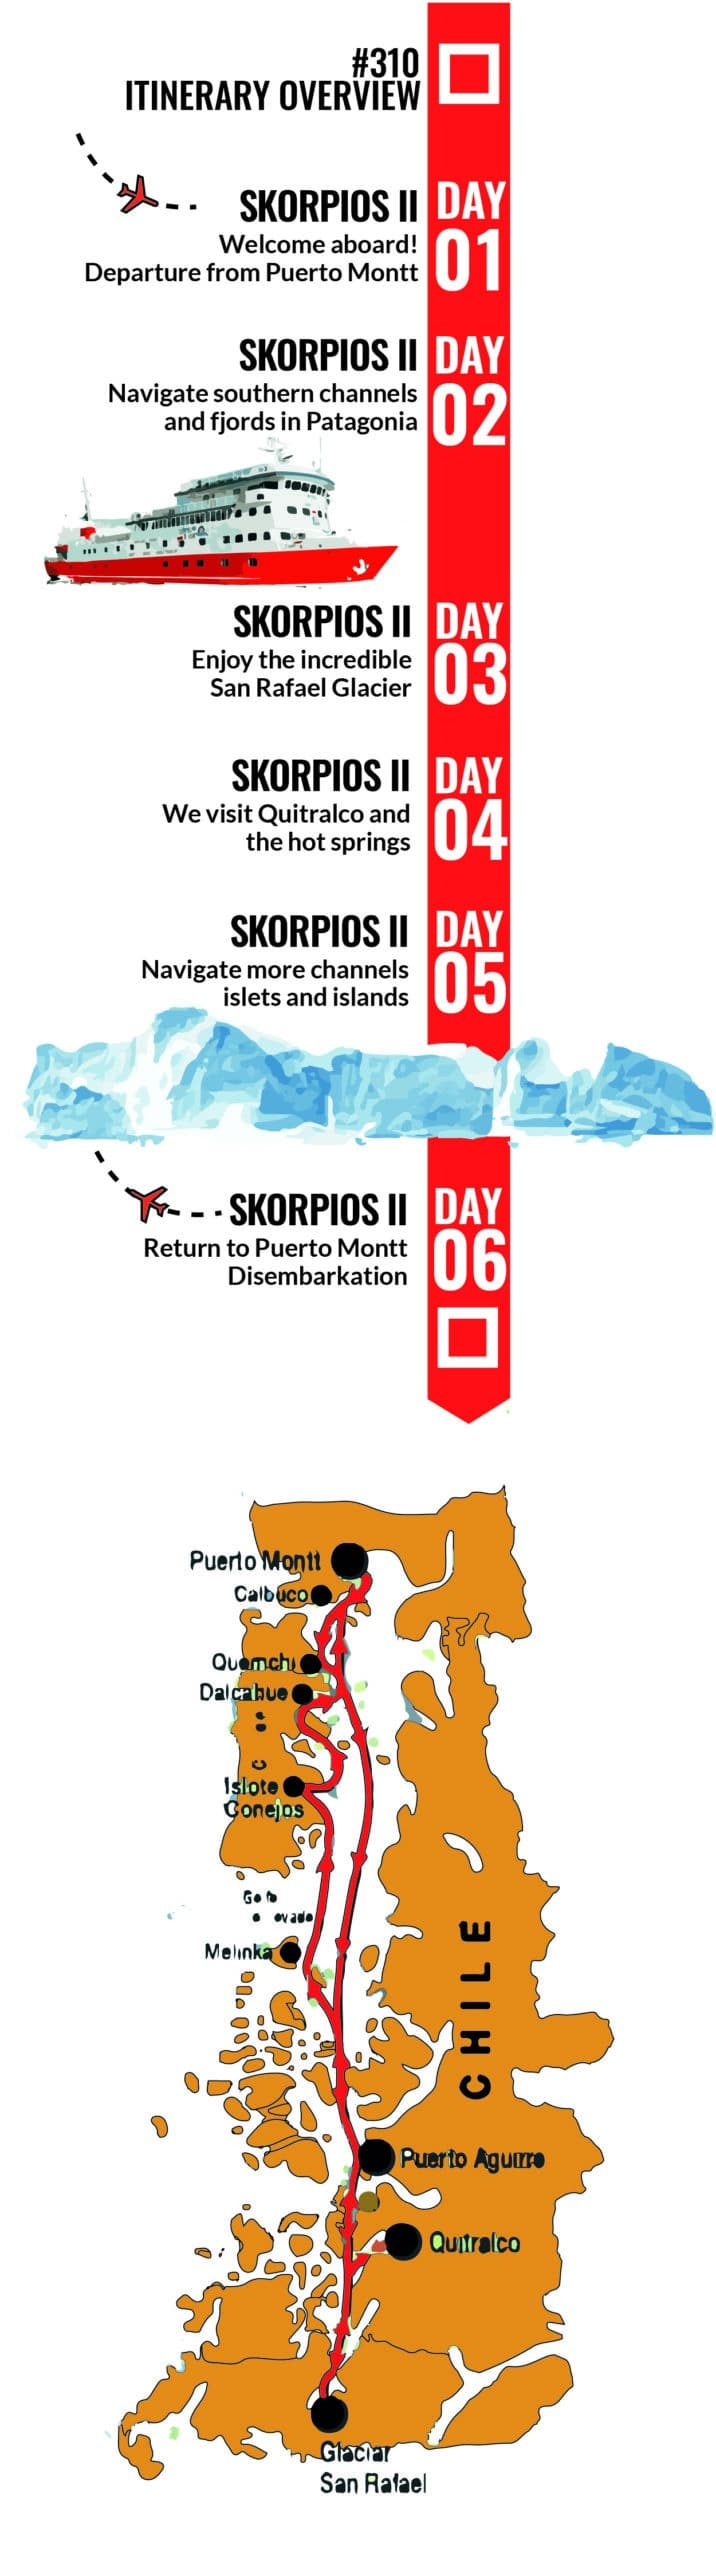 Skorpios II Cruise - Chonos Route by RipioTurismo DMC in Argentina and Chile